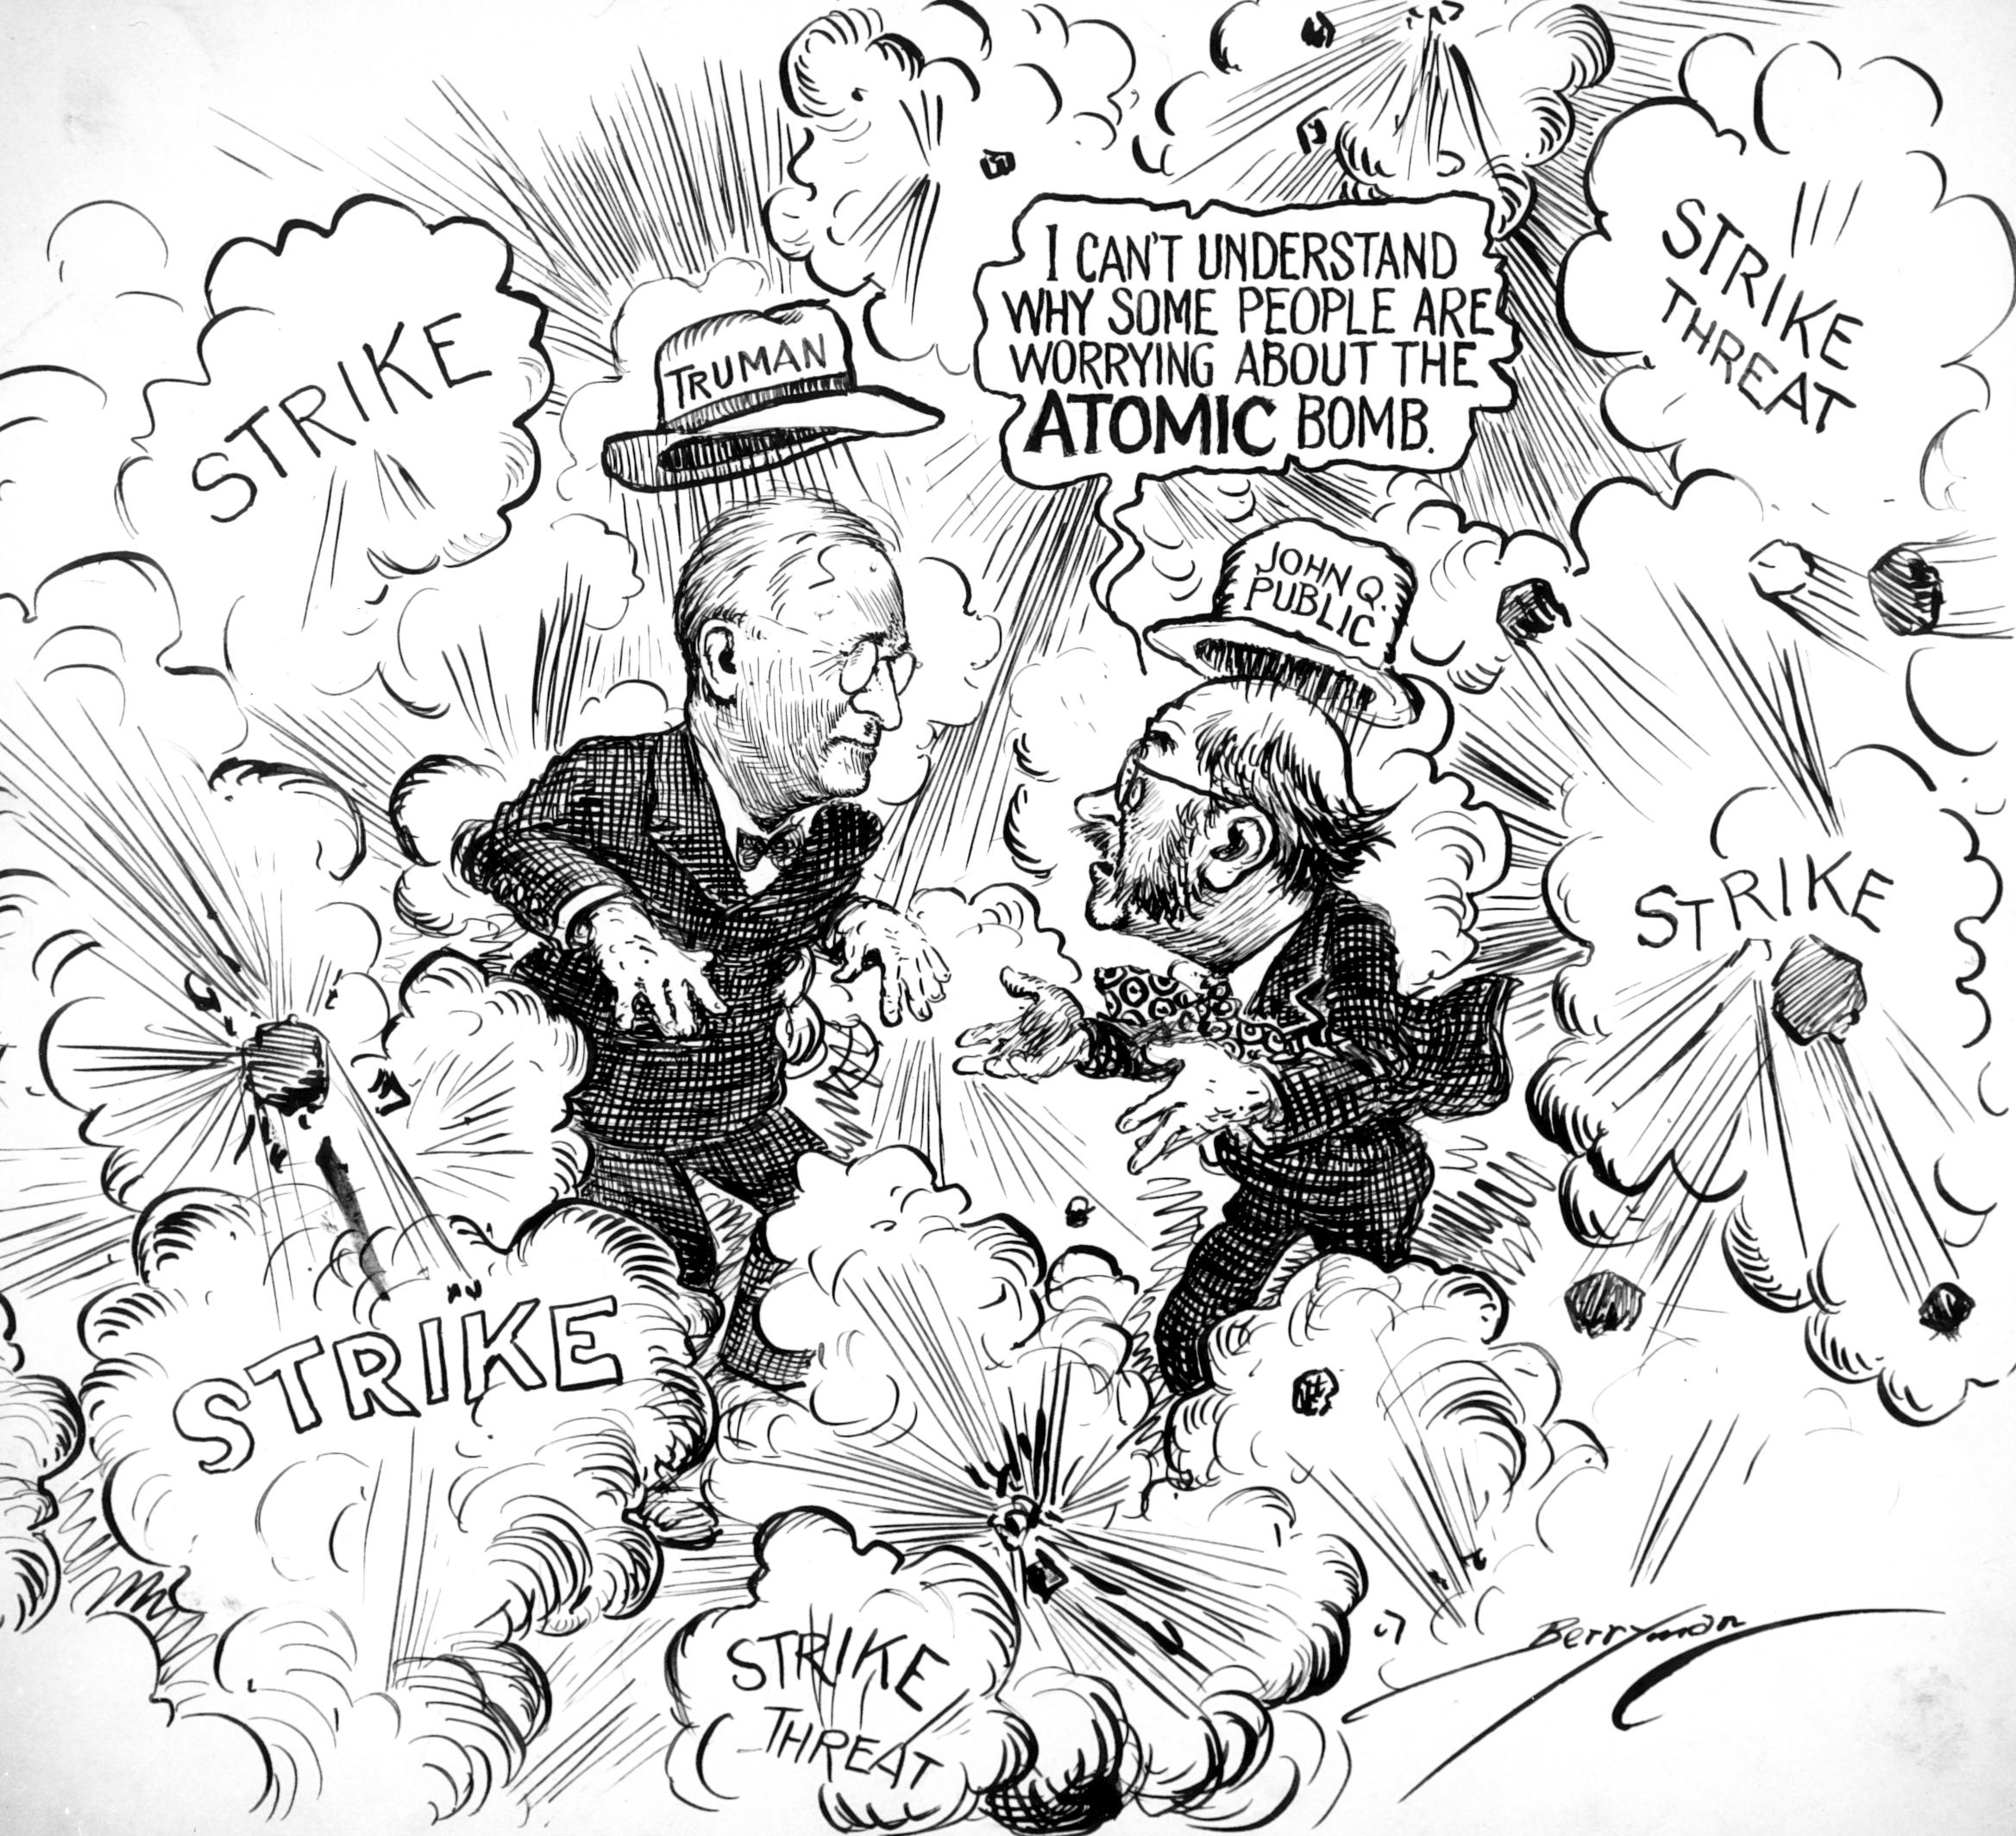 A political cartoon by Clifford Berryman about the